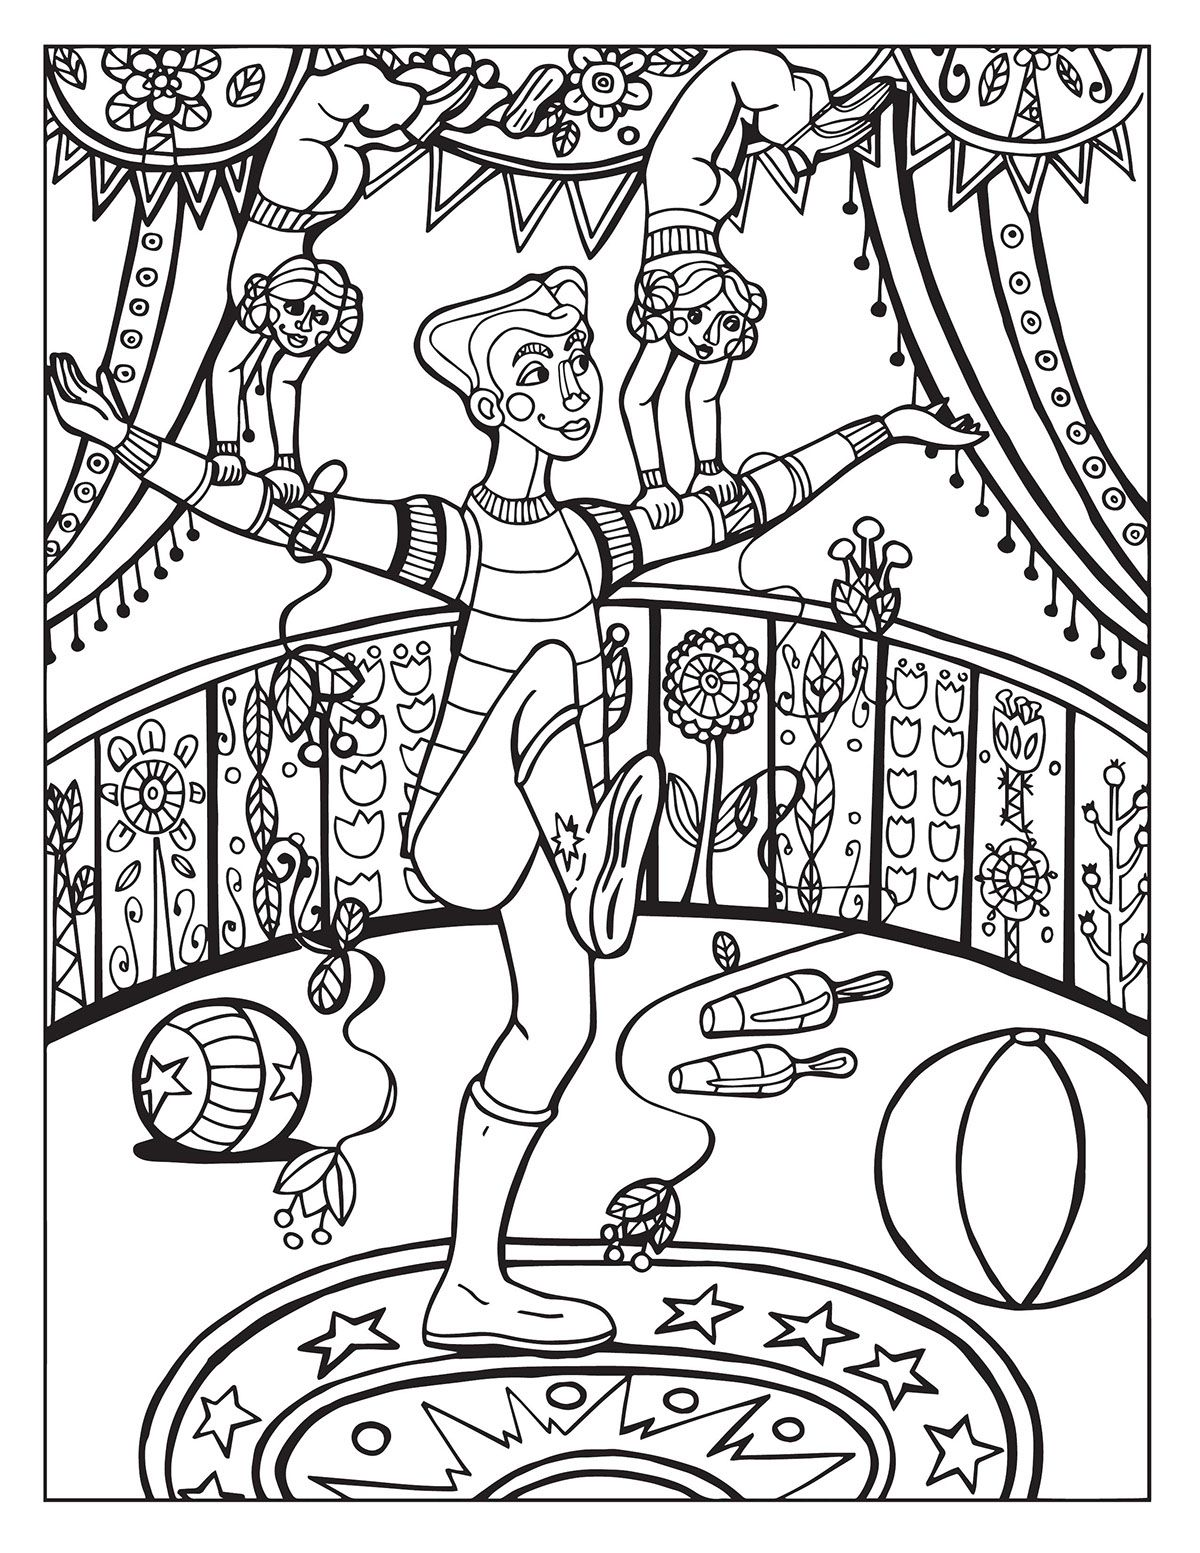 A Day At The Circus Coloring Page On Behance Coloring Pages Coloring Books Colorful Drawings